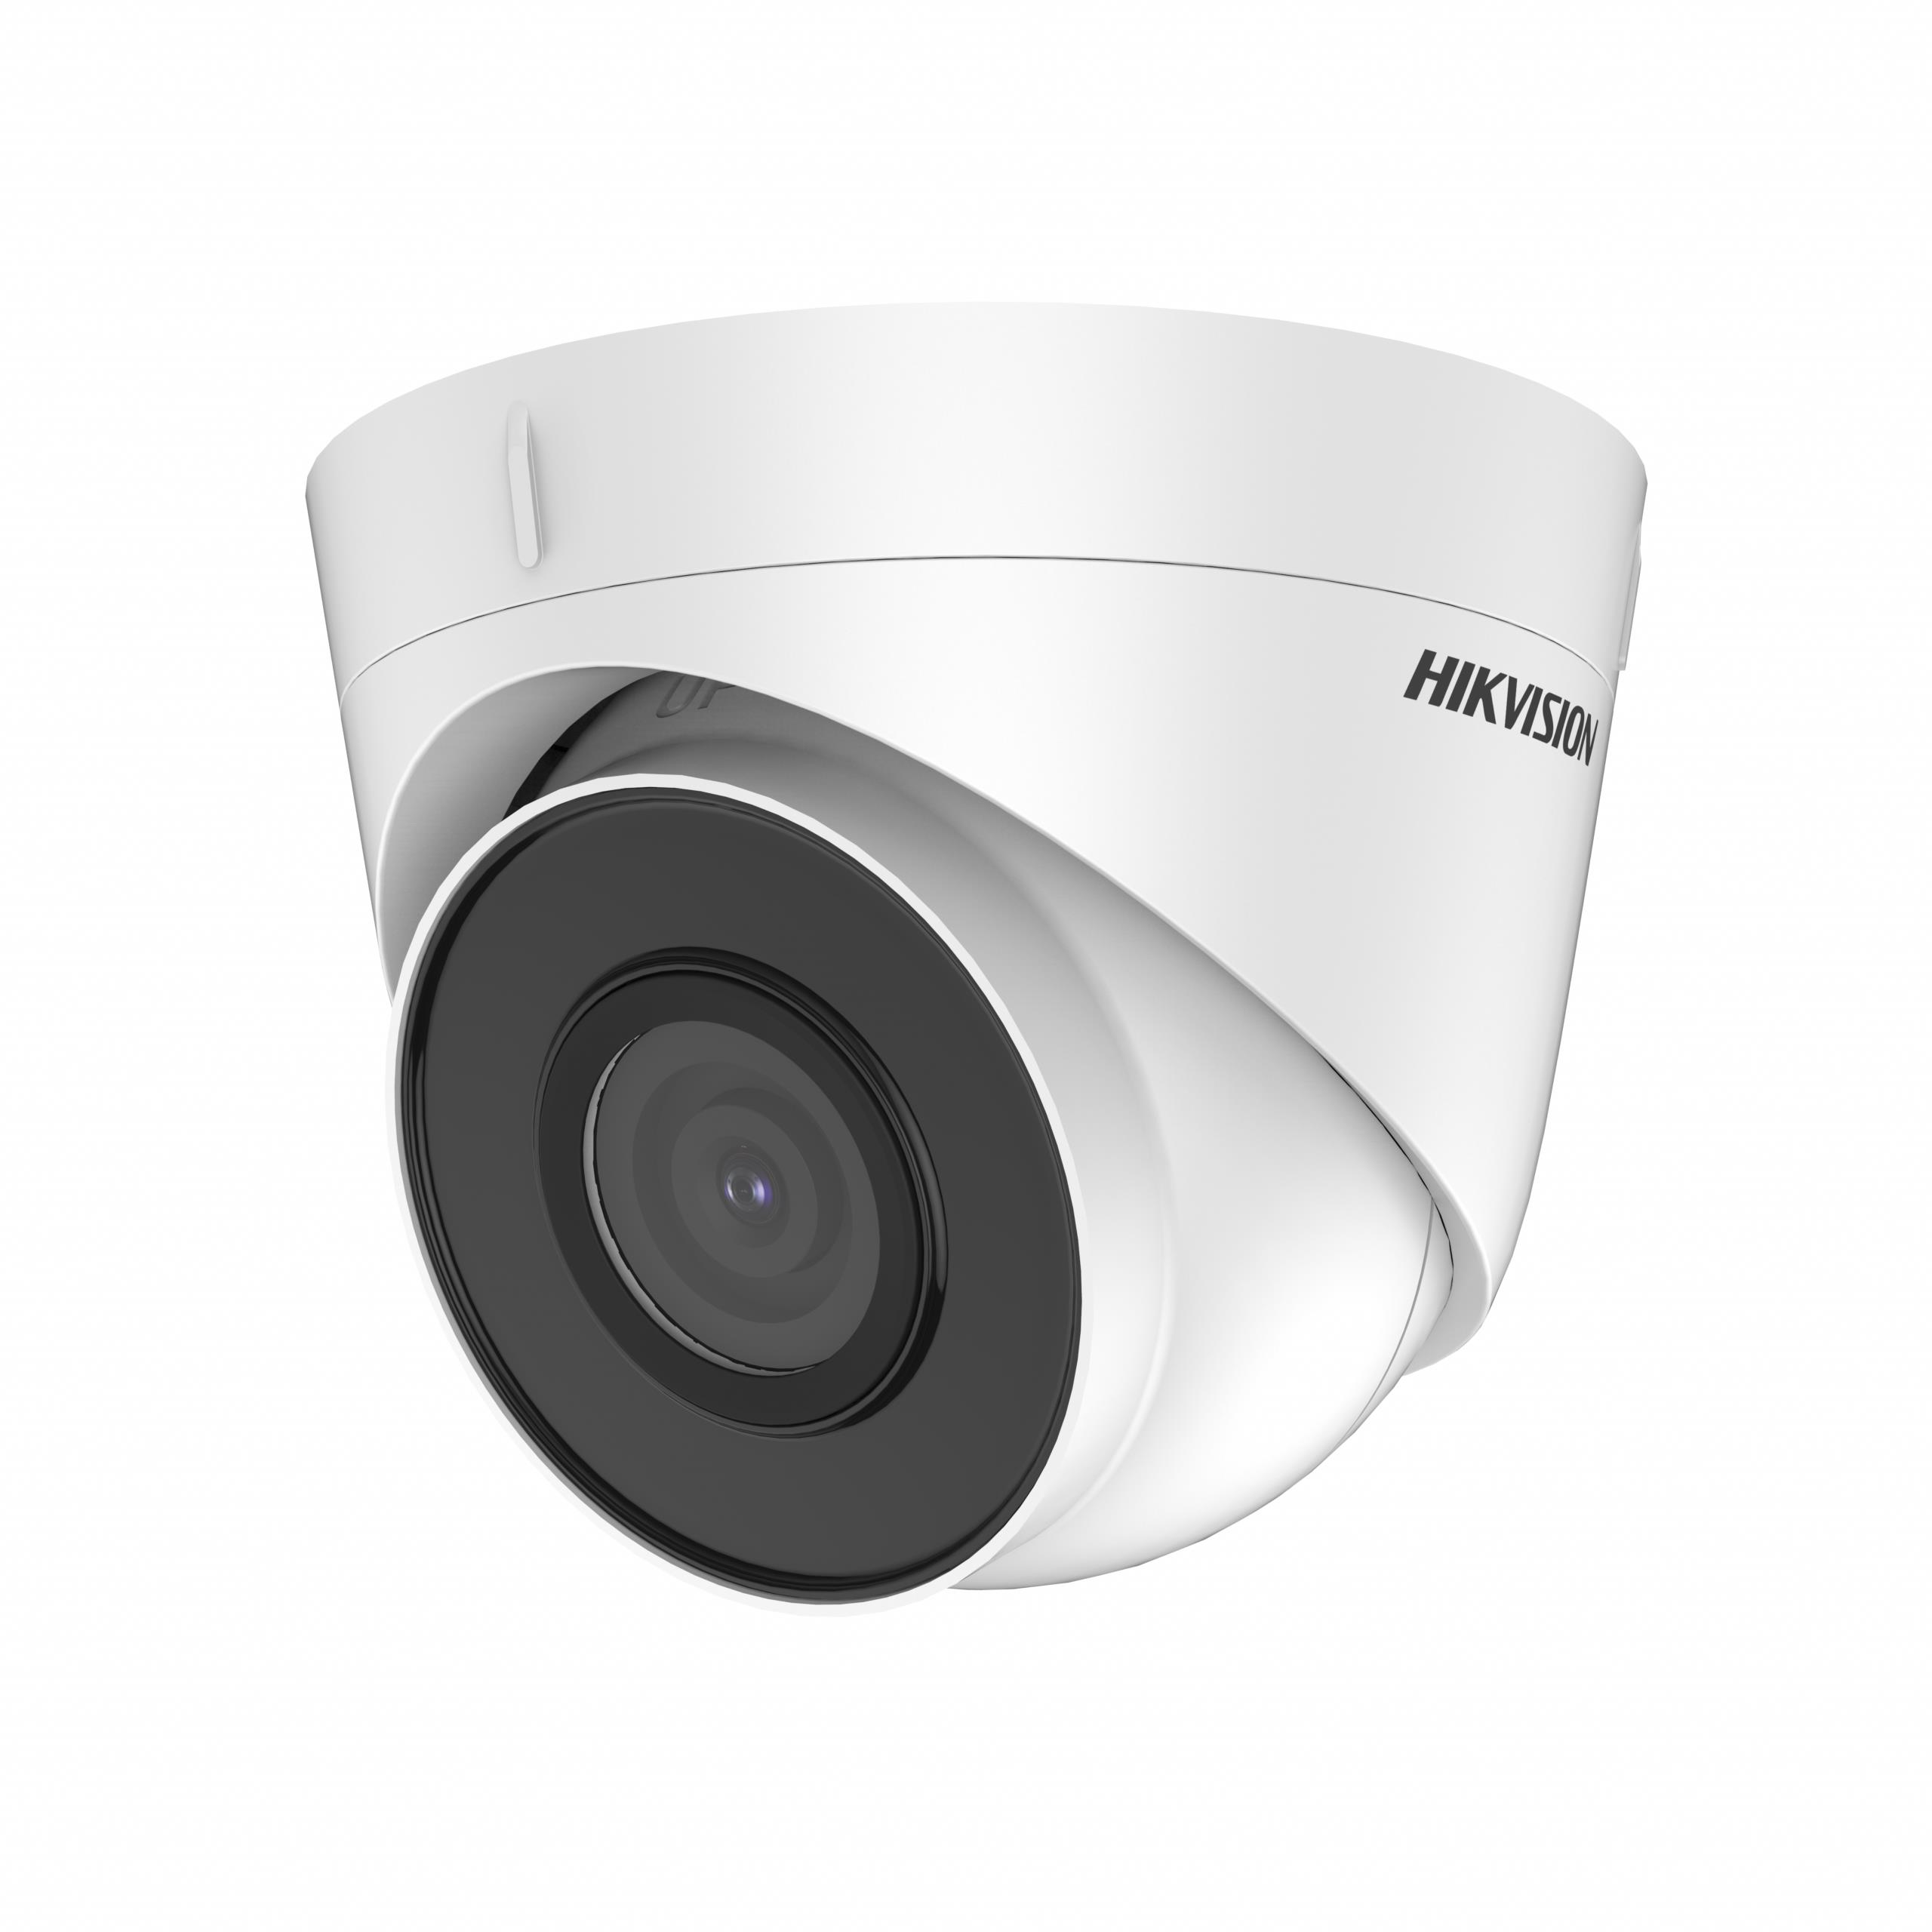 HIKVISION DS-2CD1323G0-IU 2MP 2.8MM 30MT BLC, ROI, 3D DNR H.265+/H.265 IP66 IR DOME IP KAMERA